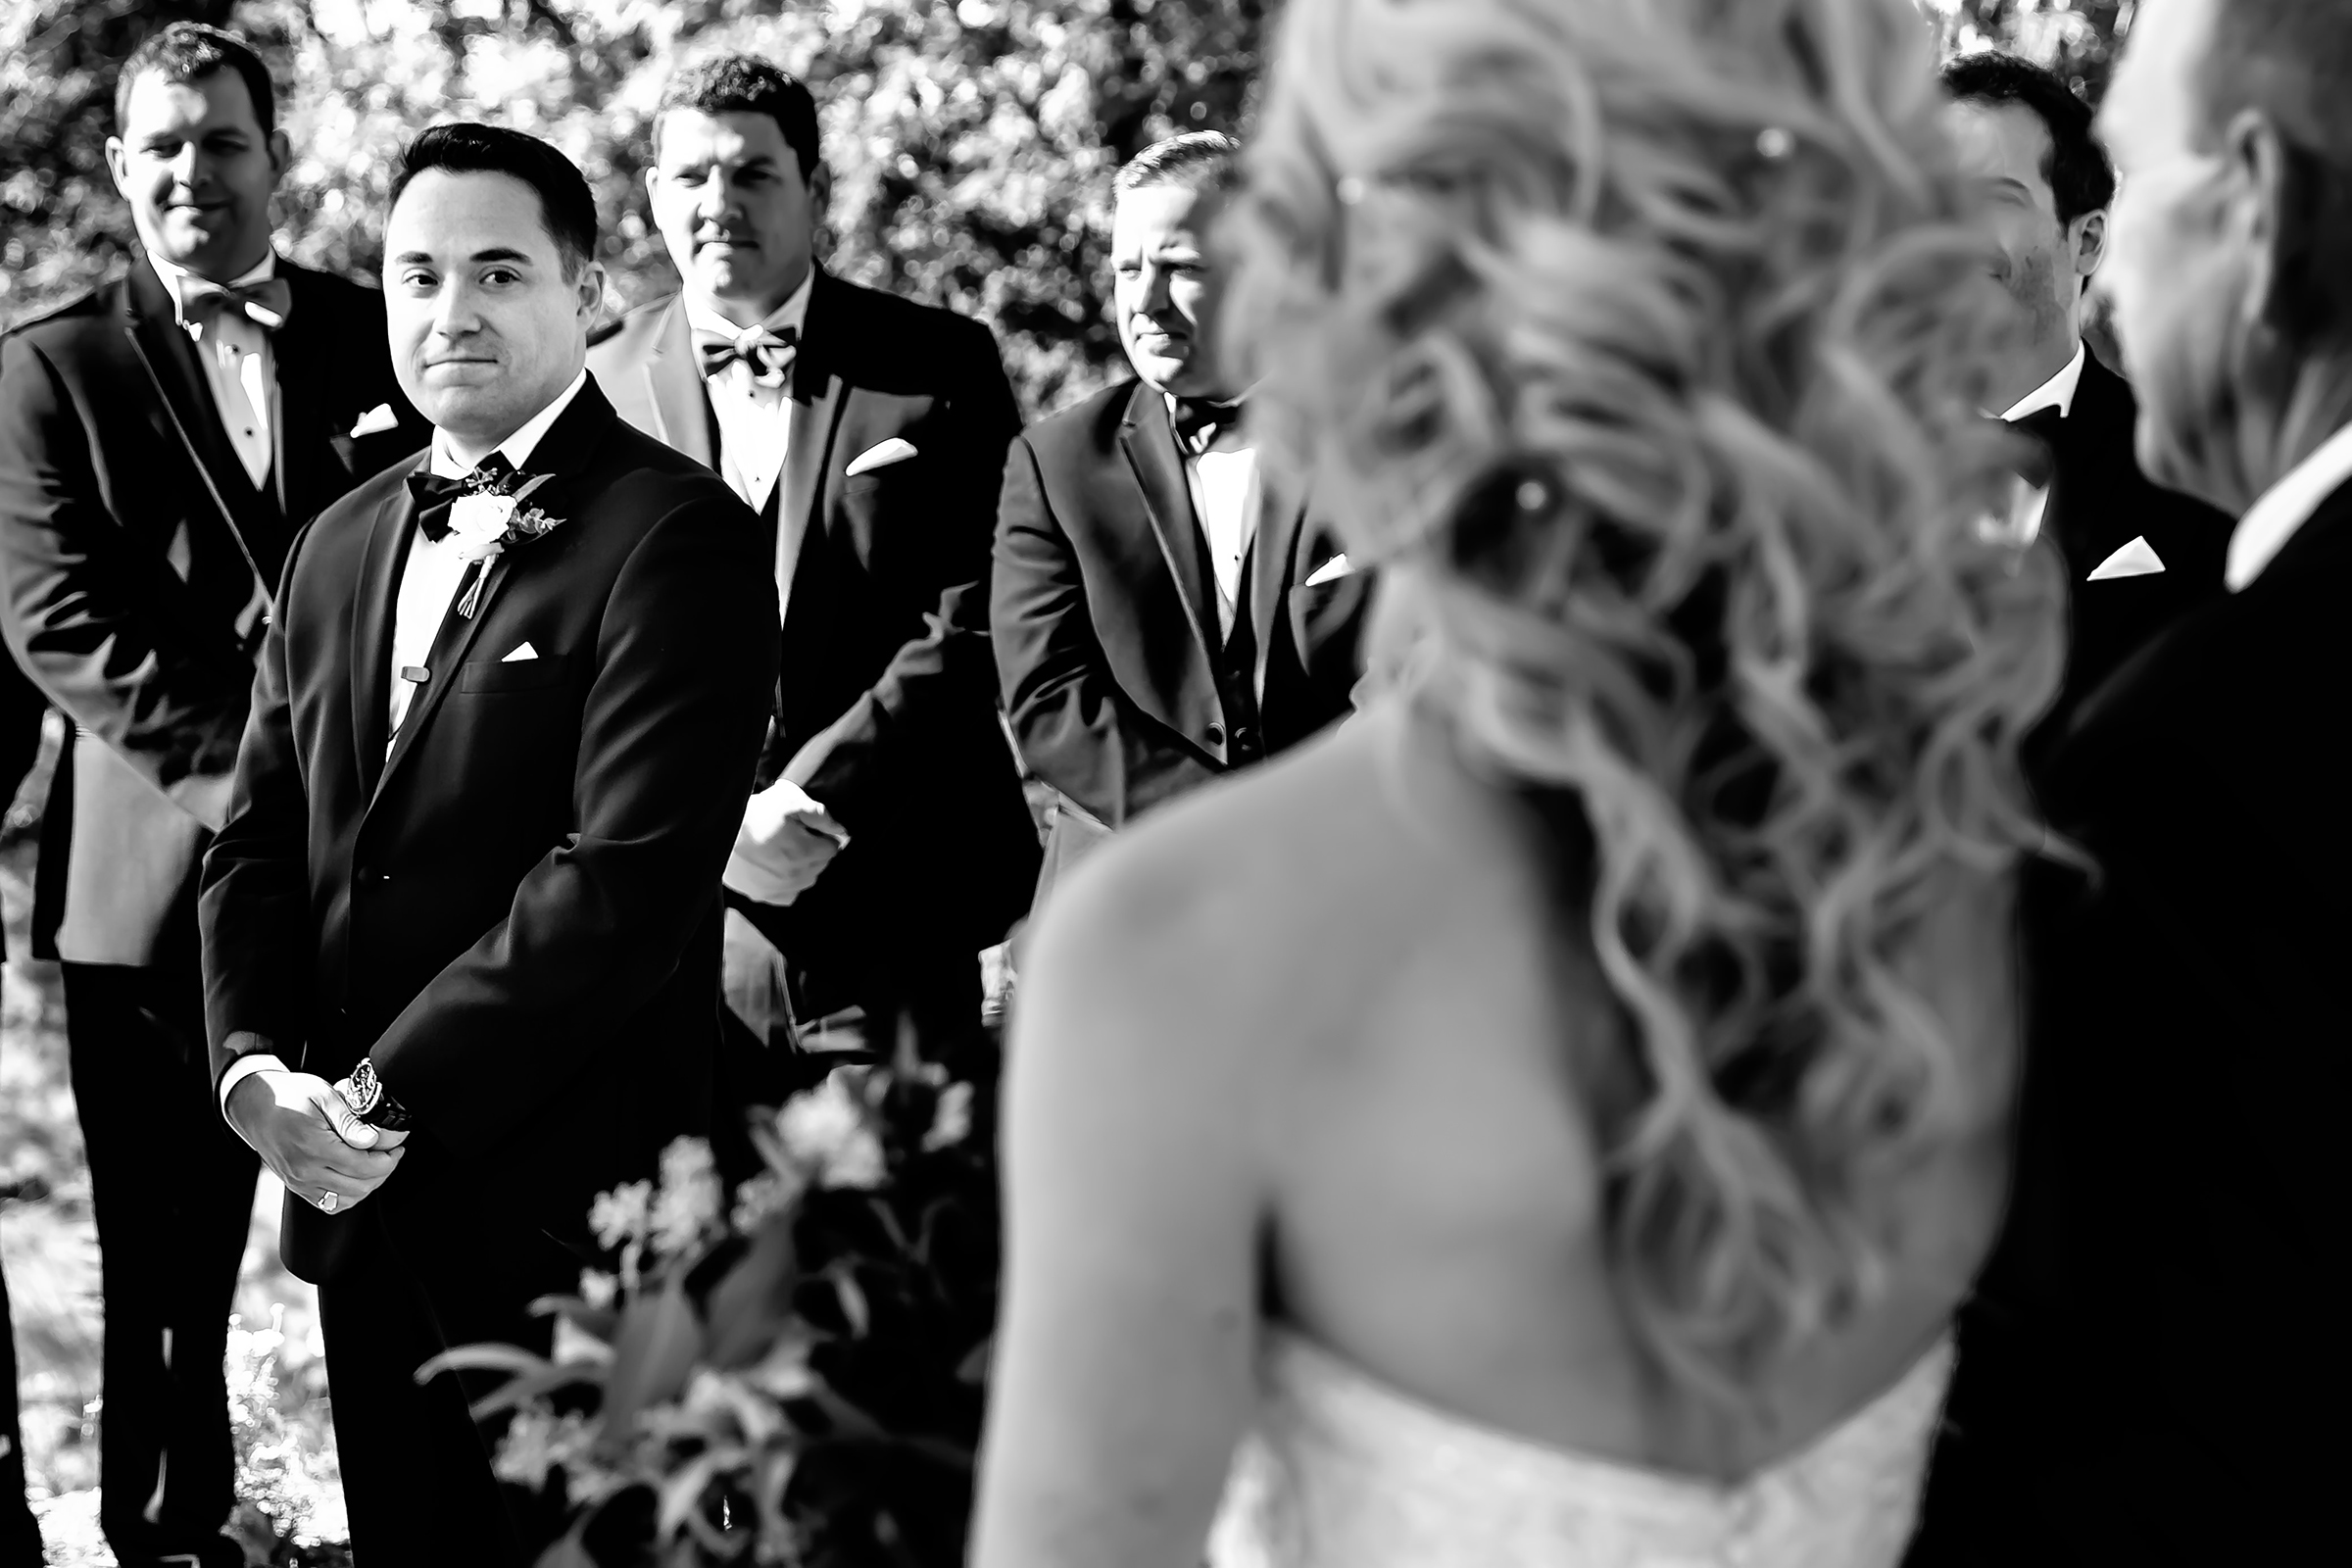 Groom awaits bride with groomsmen - photo by Rayan Anastor Photography